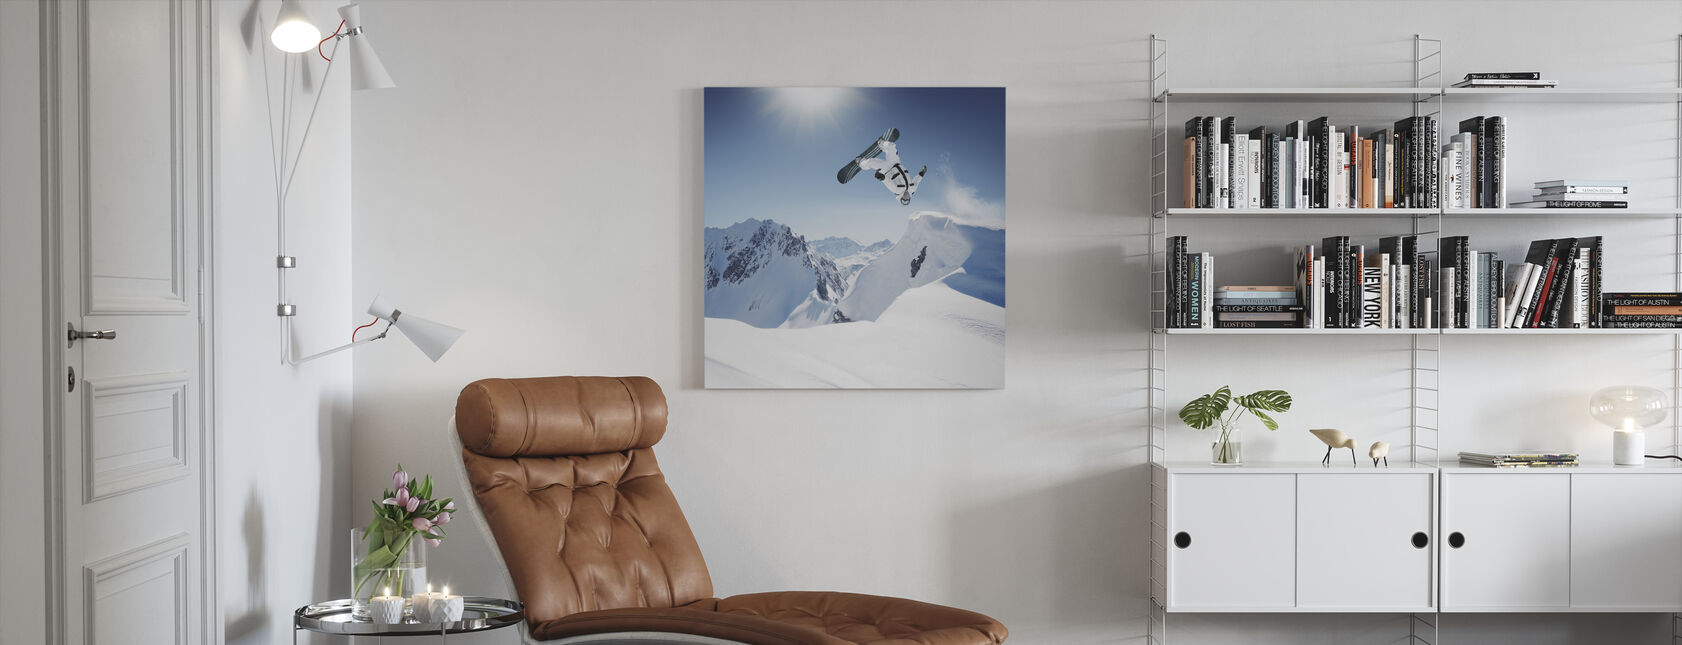 Snowboarder Backflip - Canvas print - Living Room